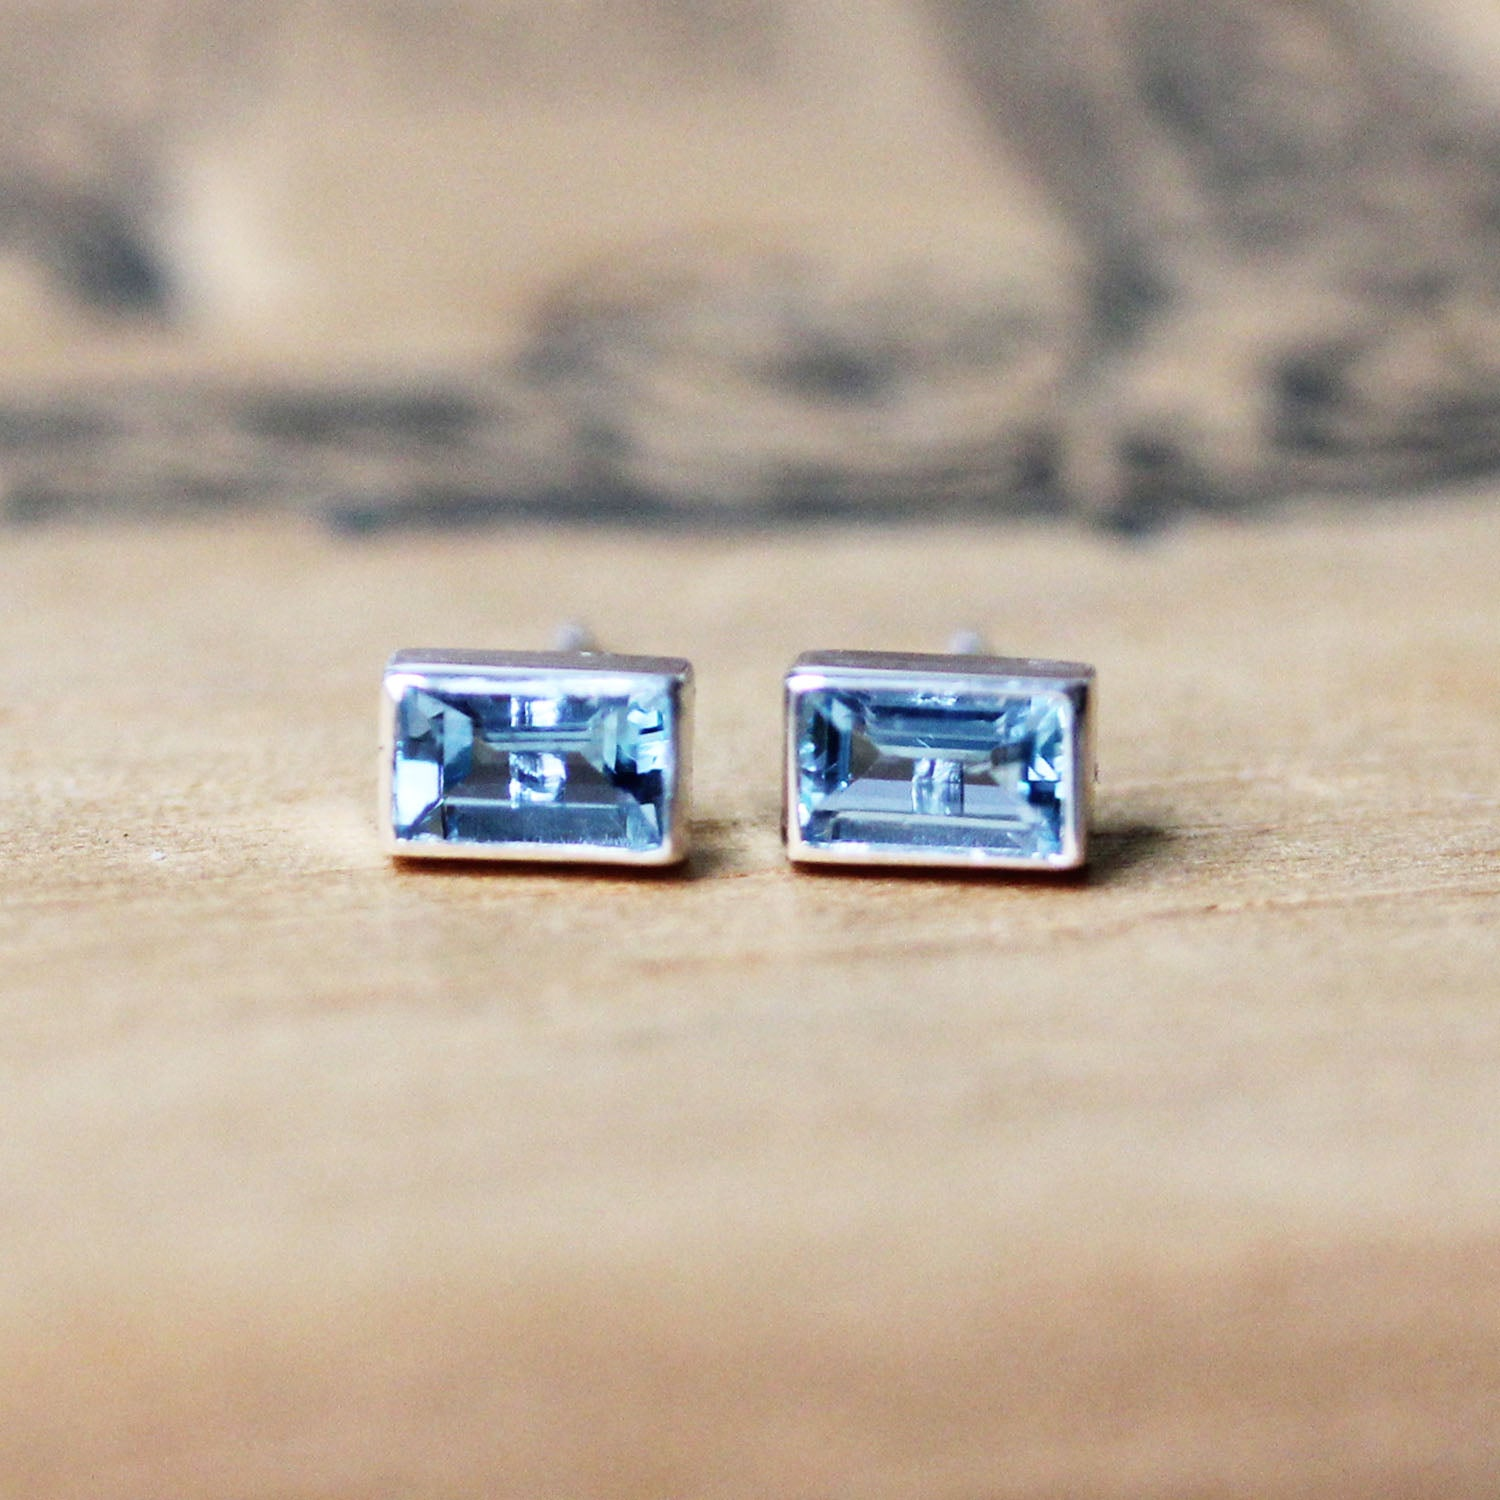 Sterling silver stud earrings with baguette cut aquamarine gemstones.